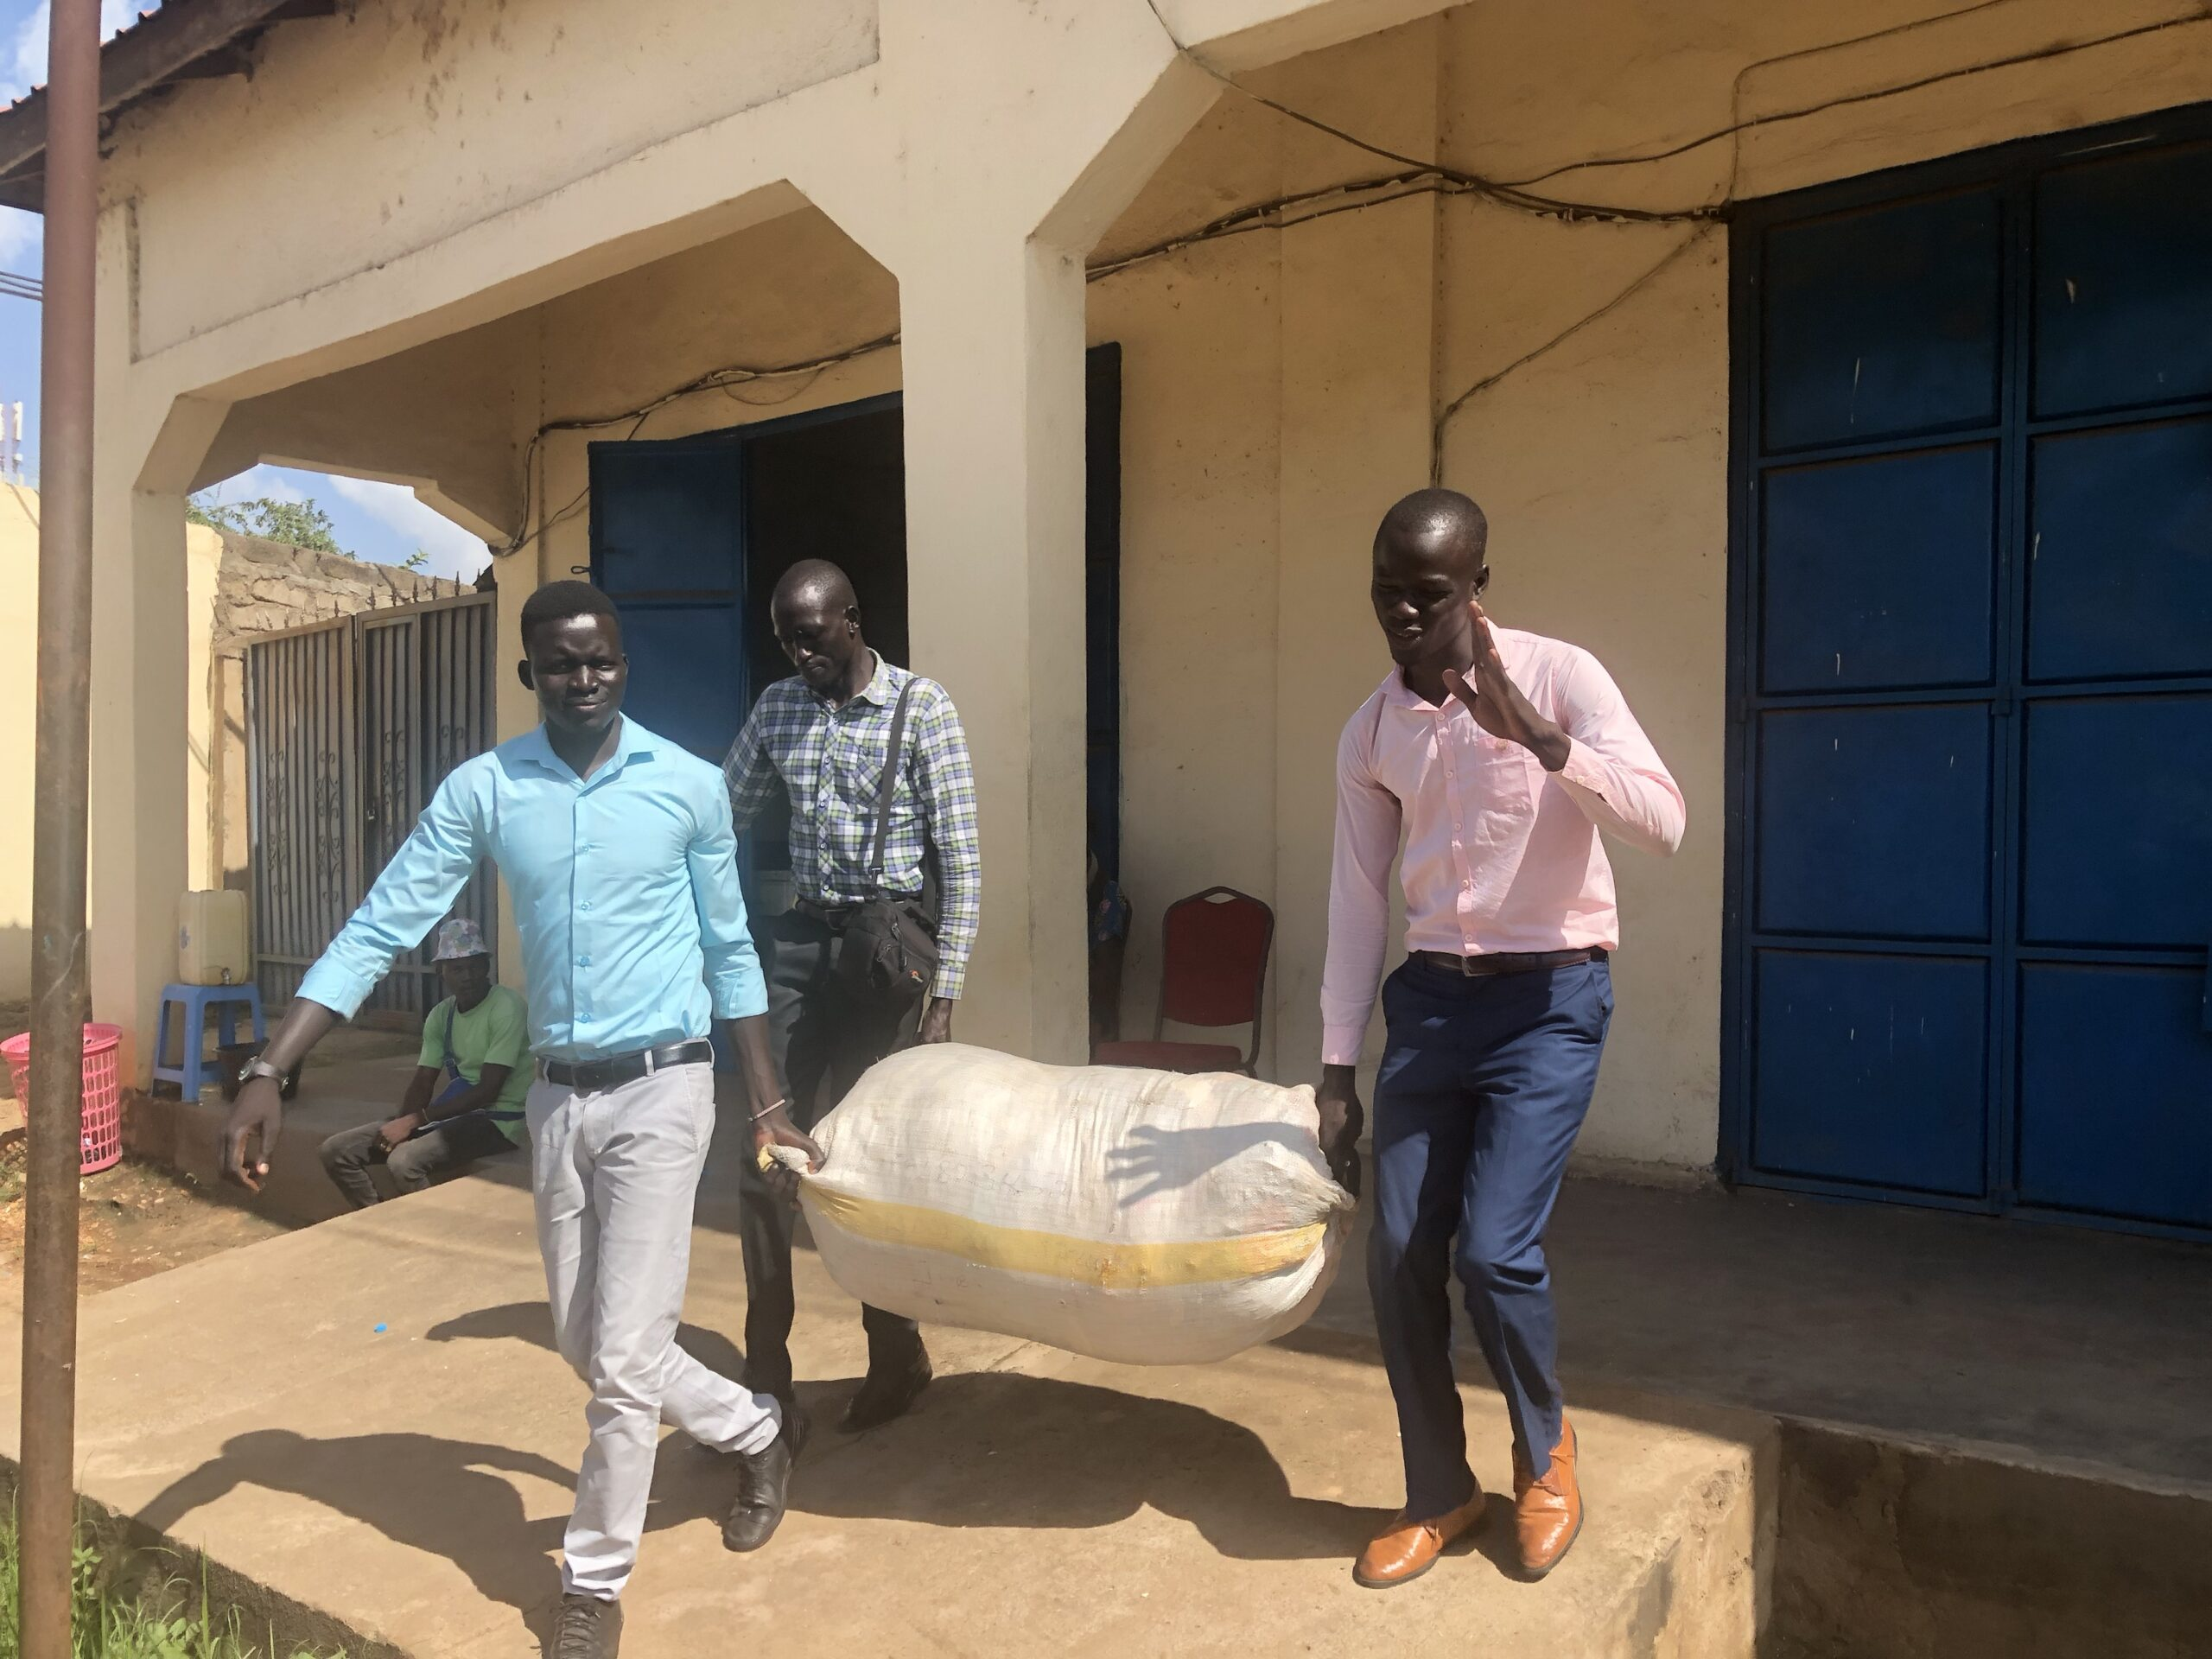 ujoss and number one citizen staff carrying their donation